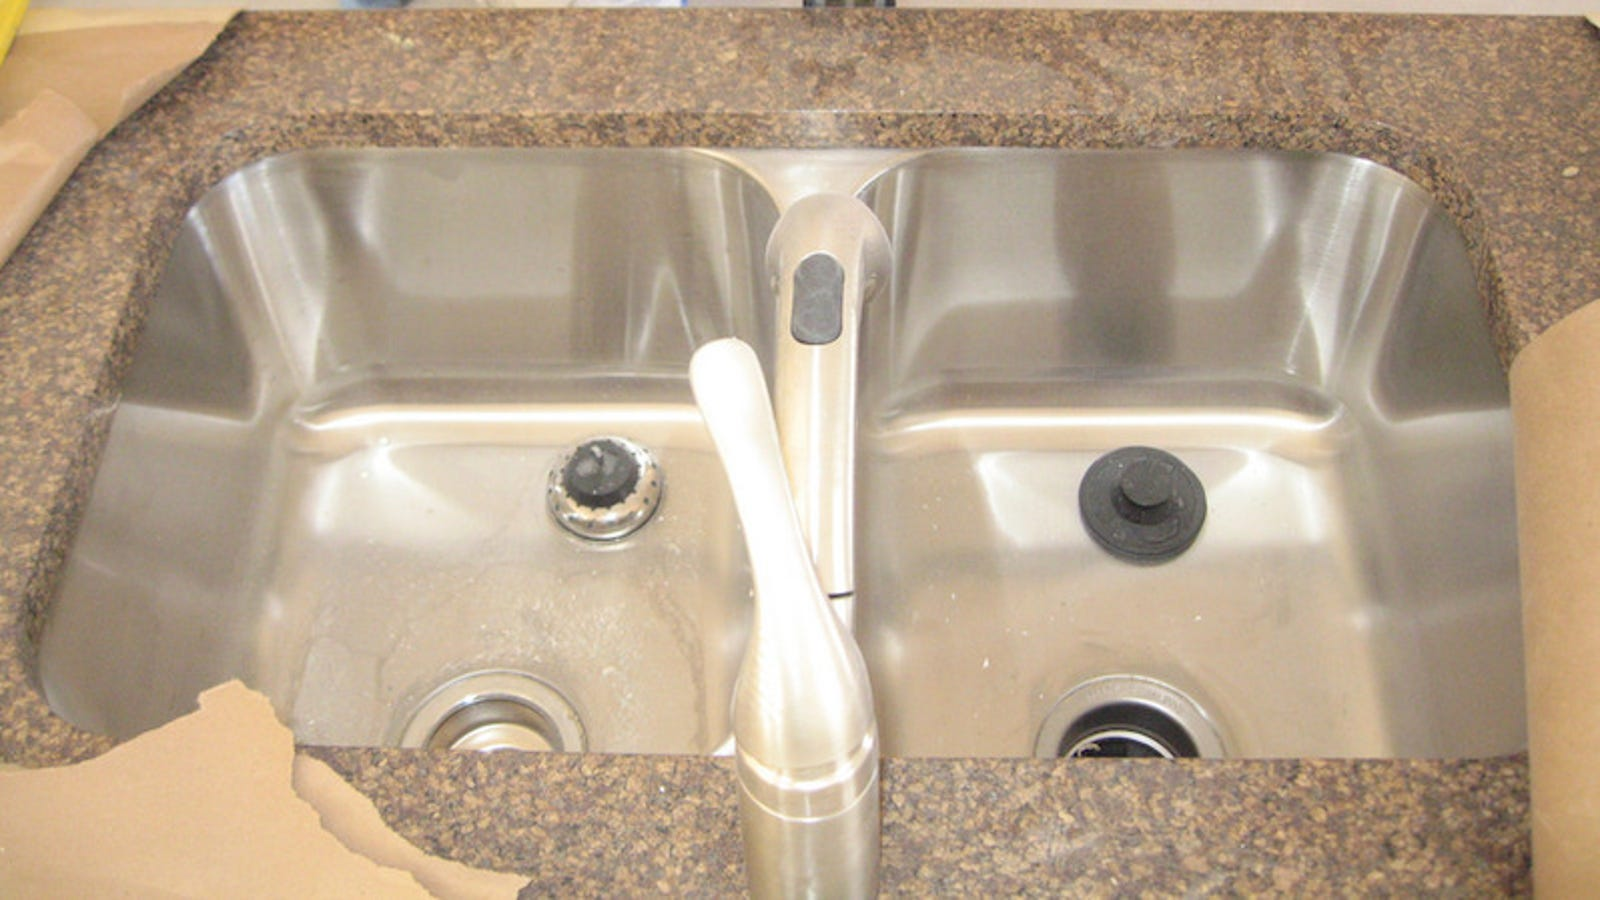 What to Consider When Replacing Your Kitchen Sink Undermount Kitchen Sink With Granite Counter Edge on granite undermount sink kit, granite countertops installation process, granite countertop installation tools, granite counter with copper sink, granite undermount kitchen sinks, granite countertops sink mounting, granite counter with top sink, granite composite sinks, granite tile countertops, prefab granite countertops with sink, granite farmhouse sink, granite counter with cherry cabinets, granite top installers, granite counter with backsplash, granite counter with soap dispenser, granite counters and sinks, granite counter with stainless steel sink, granite counter with breakfast bar, granite bathroom sinks, granite counter with wood cabinets,